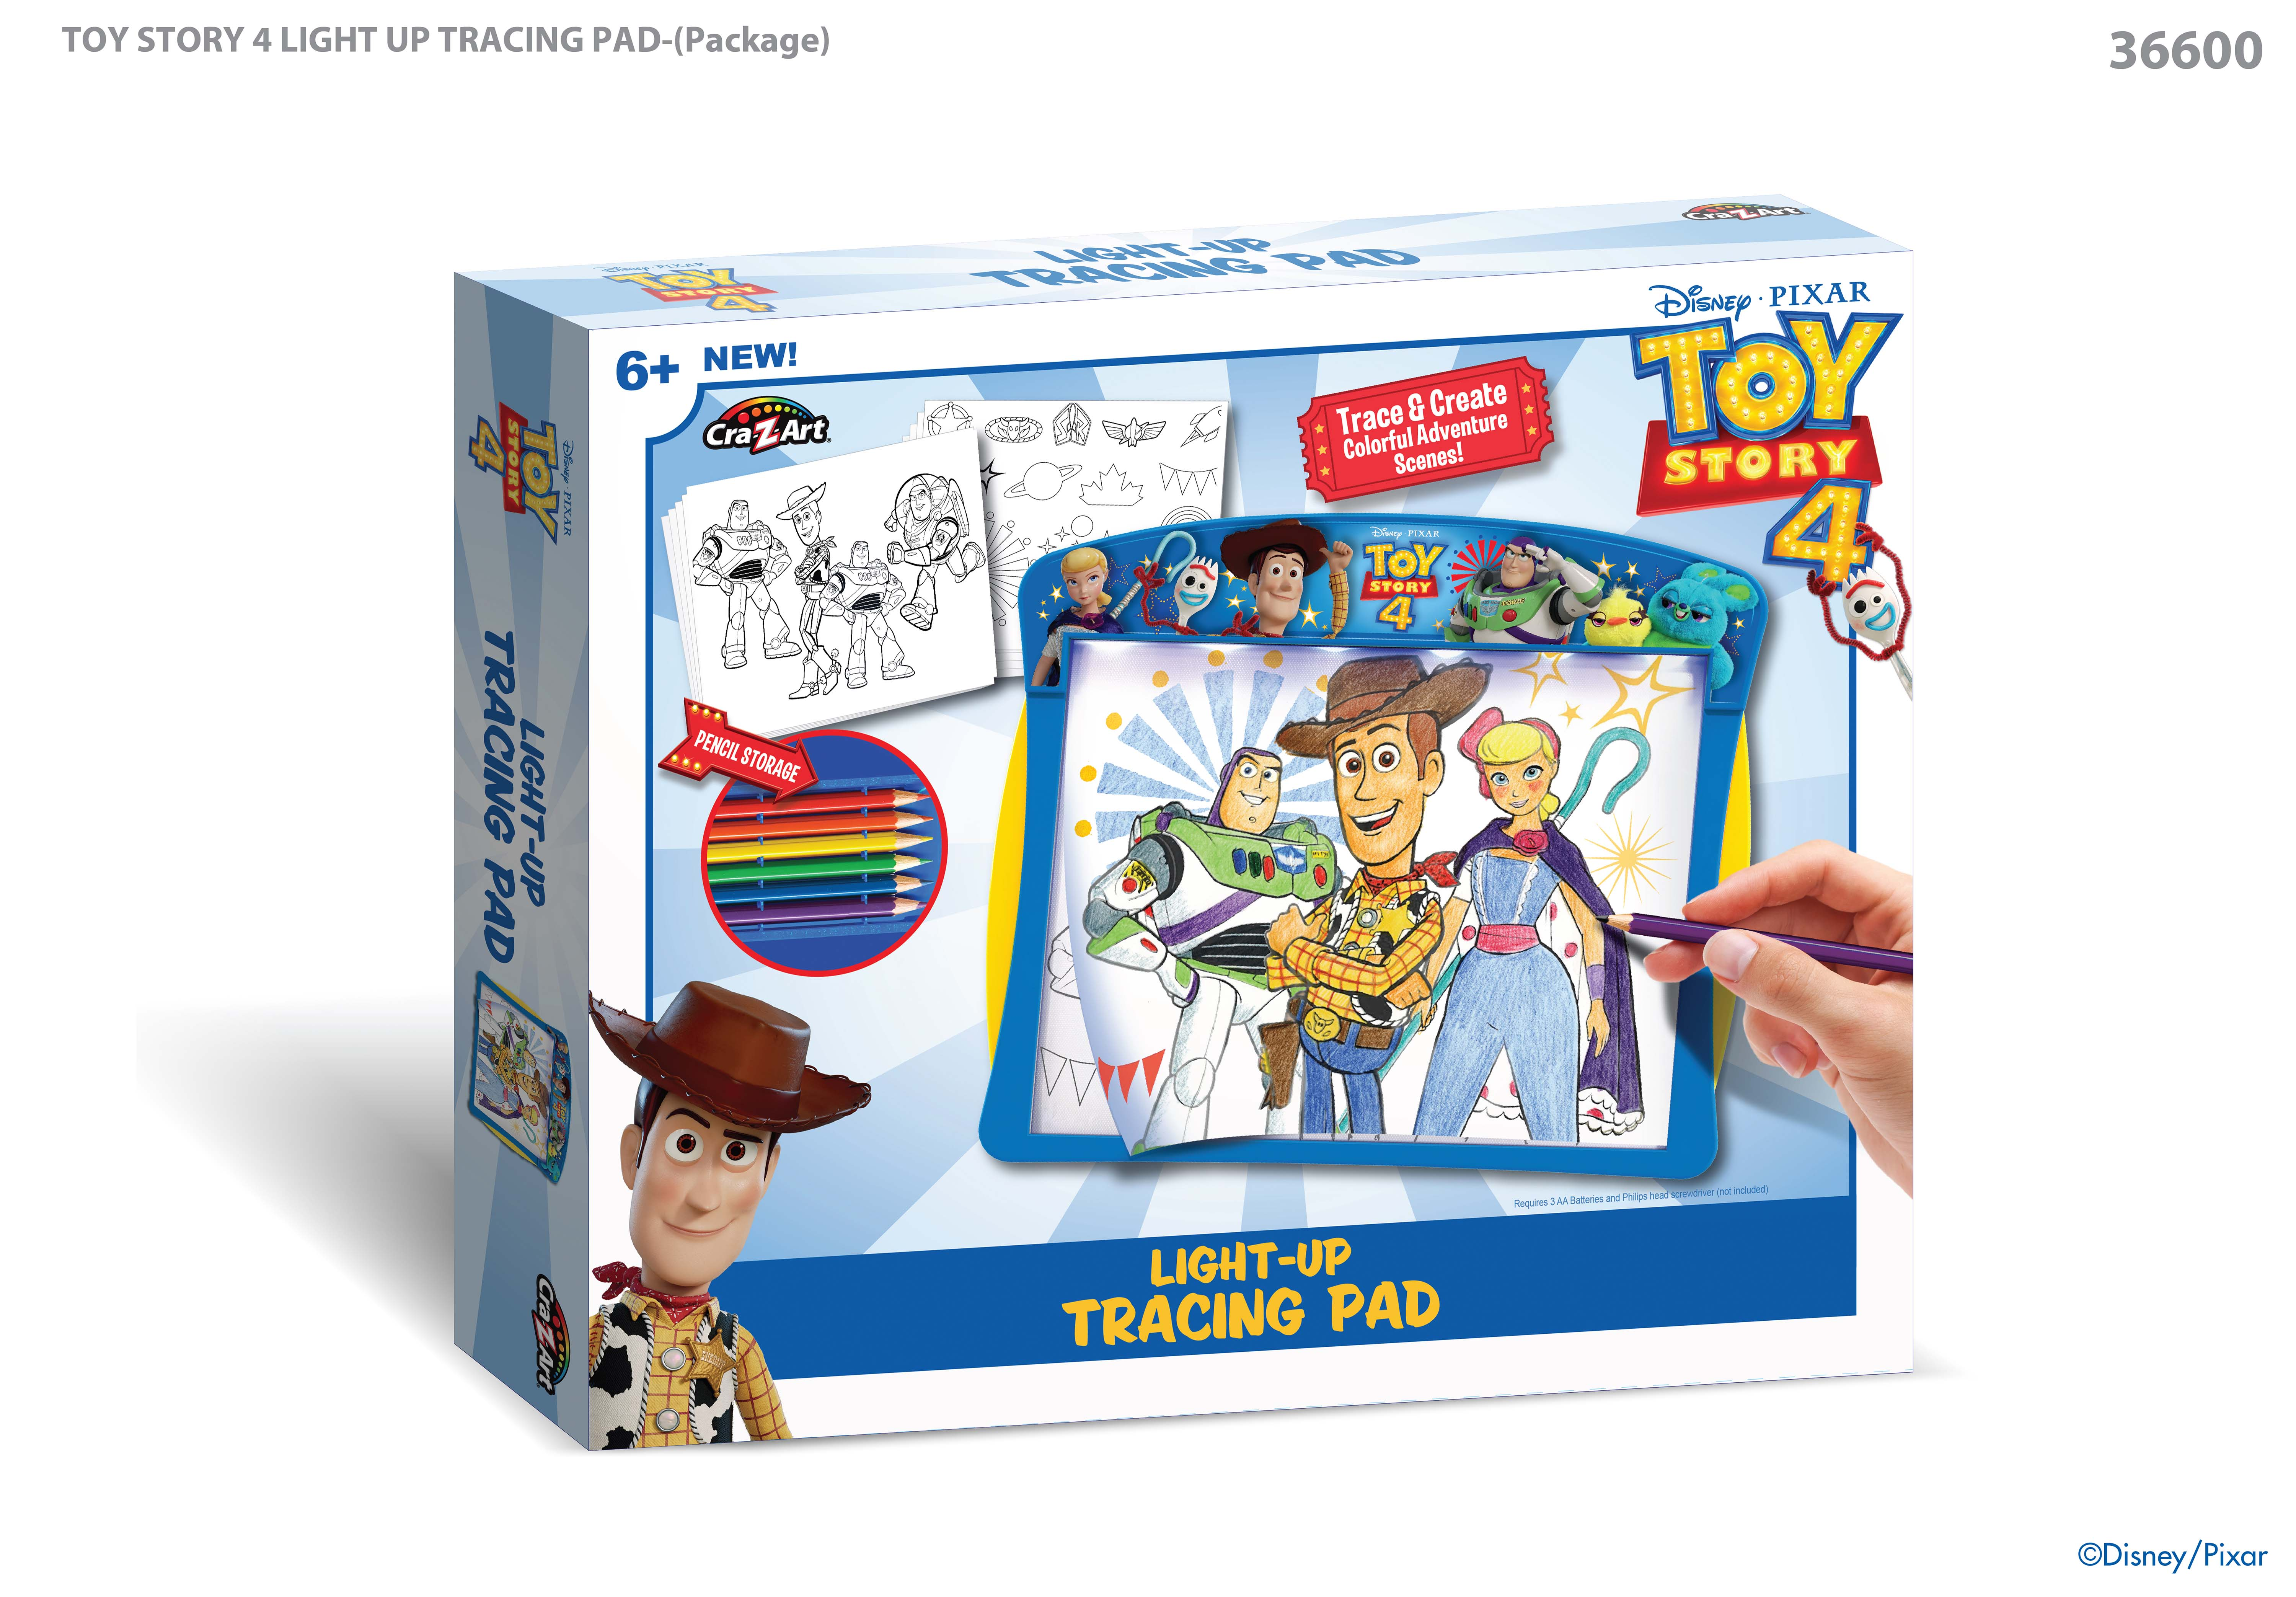 Disney Toy Story 4 Bright led's Lght Up Tracing Pa